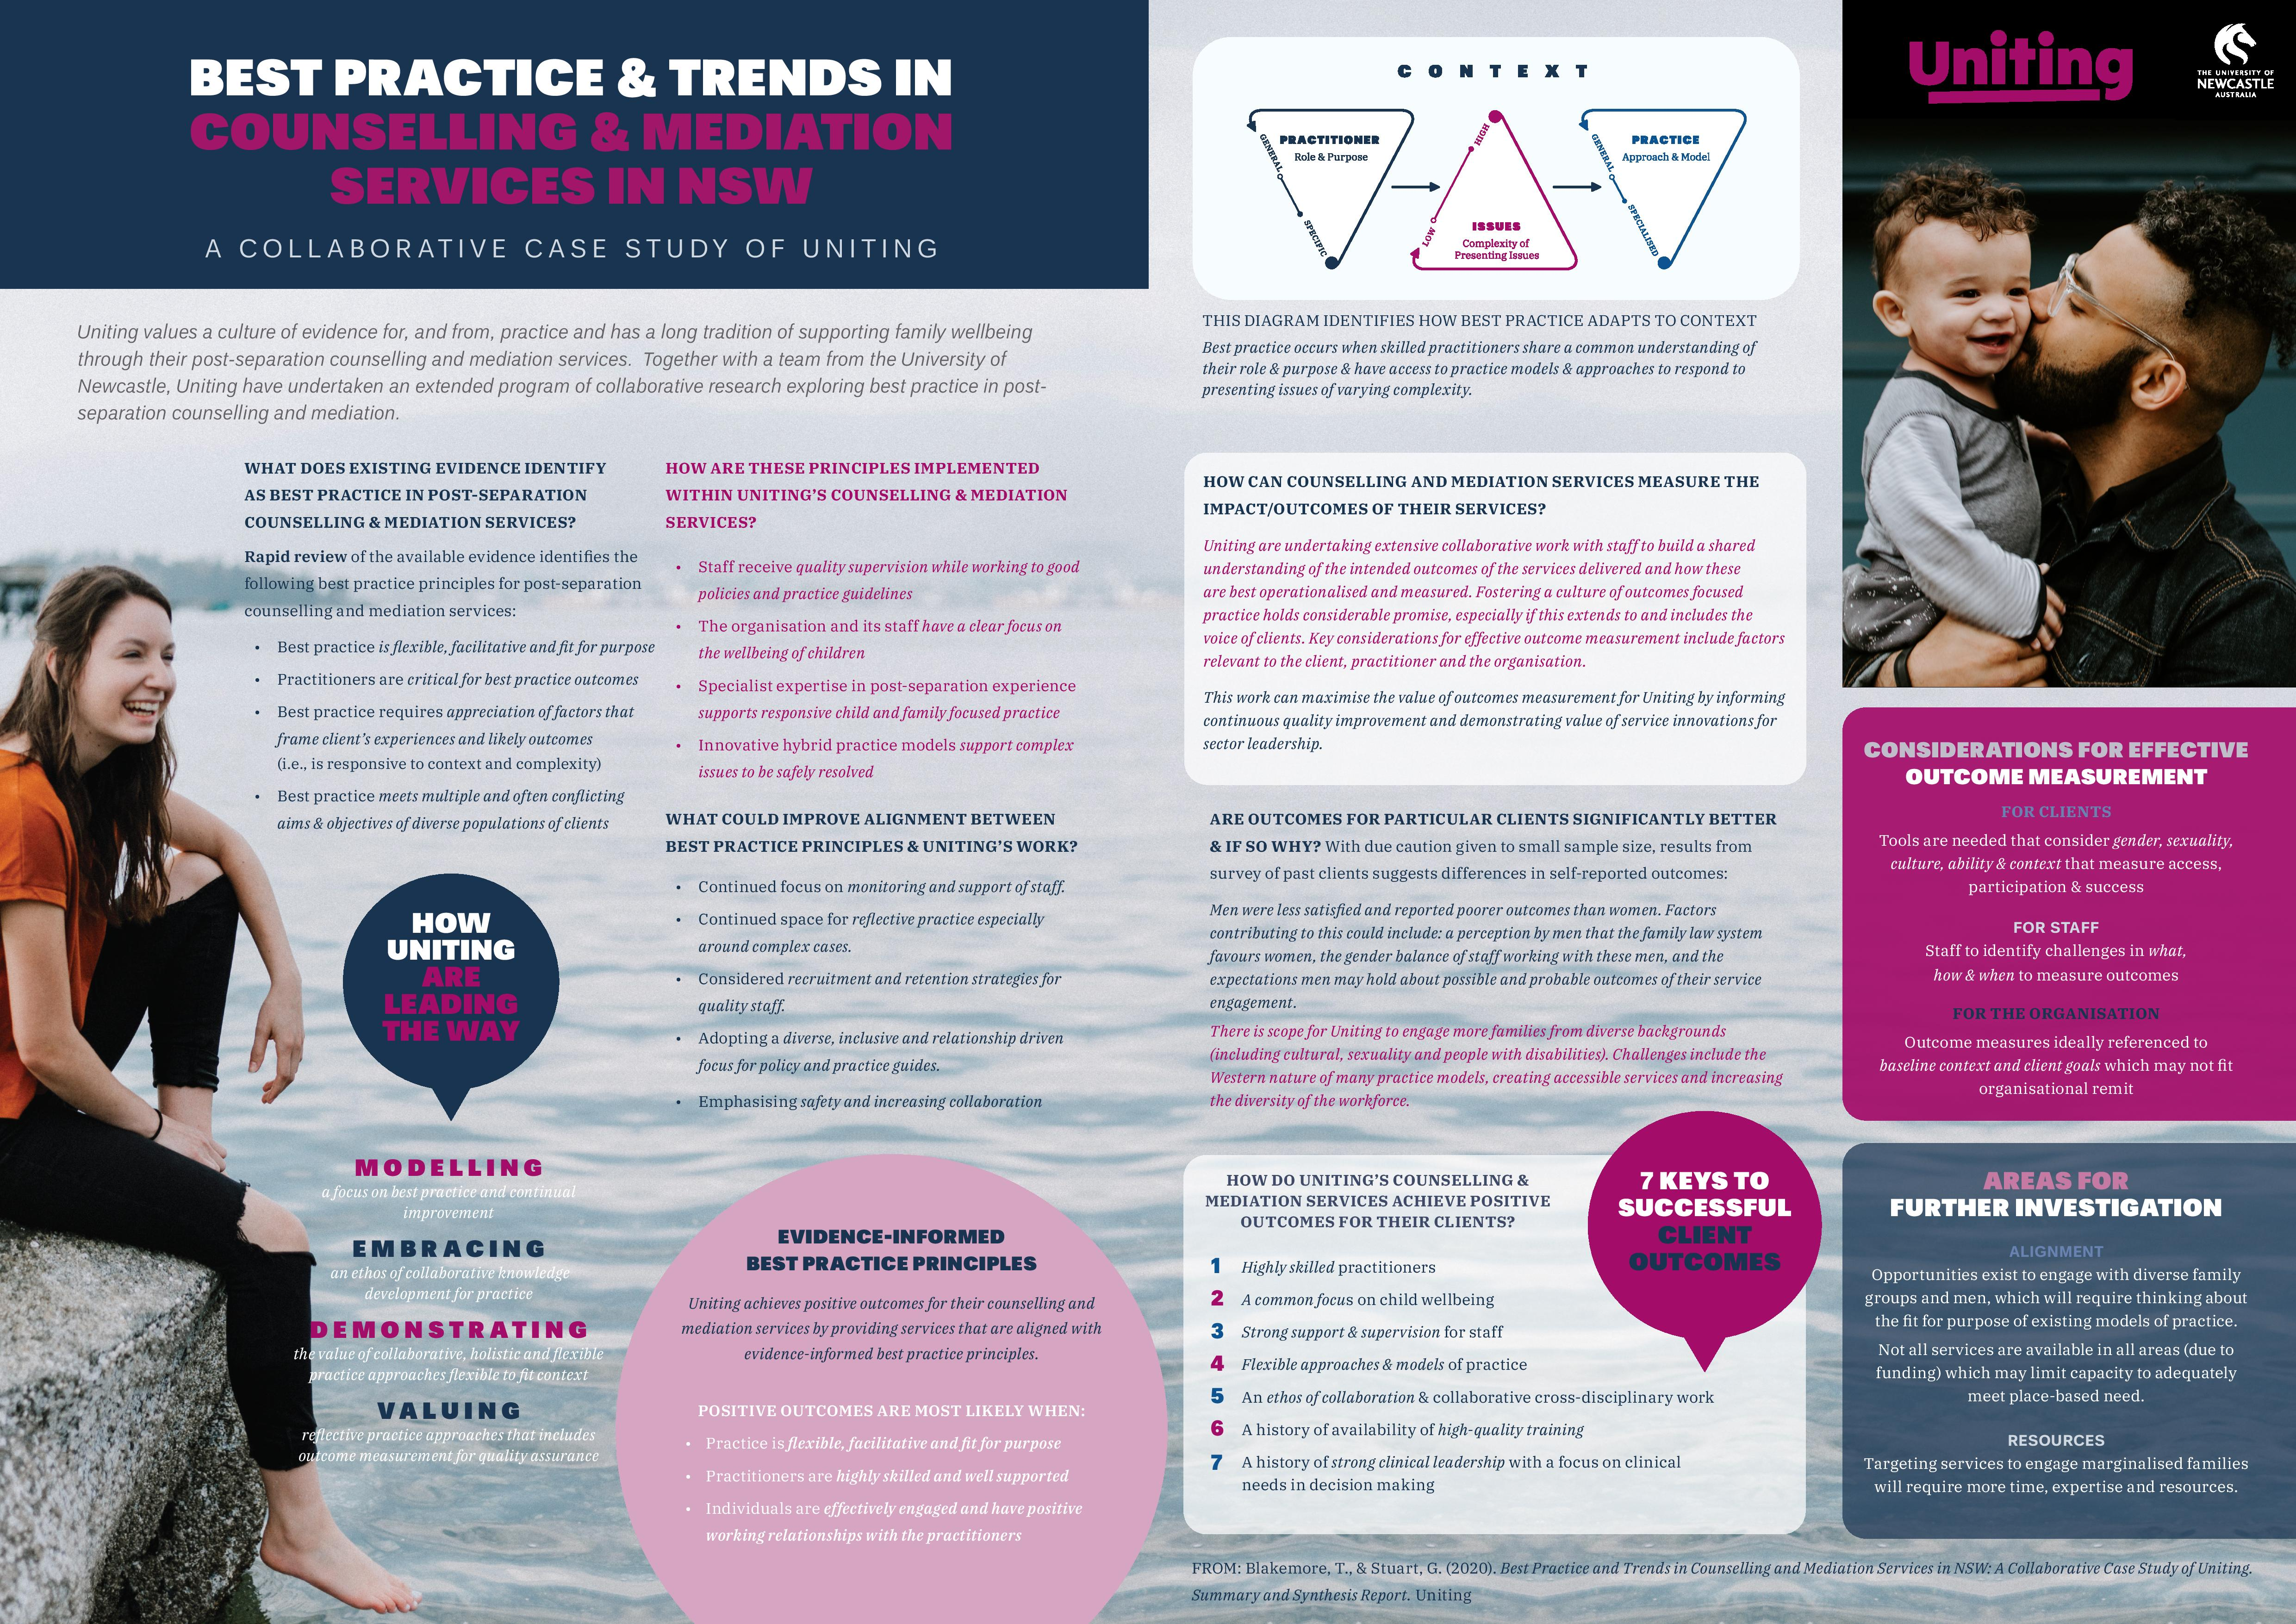 Summary of Best Practice and Trends in Counselling and Mediation Services in NSW